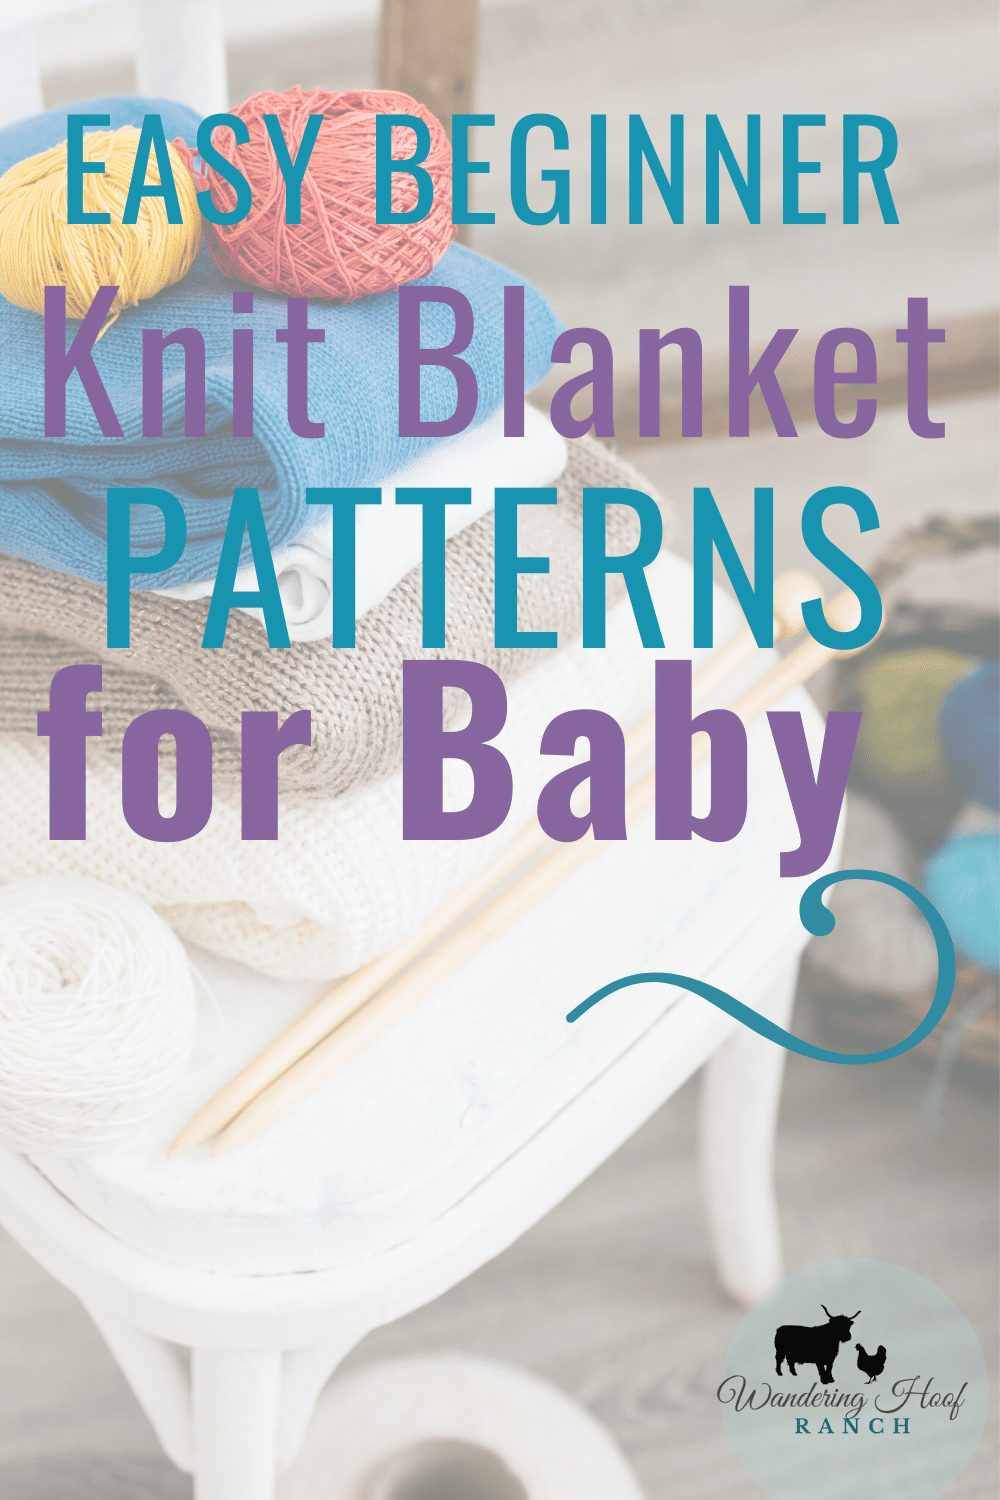 easy beginner knit blanket patterns for baby pin image